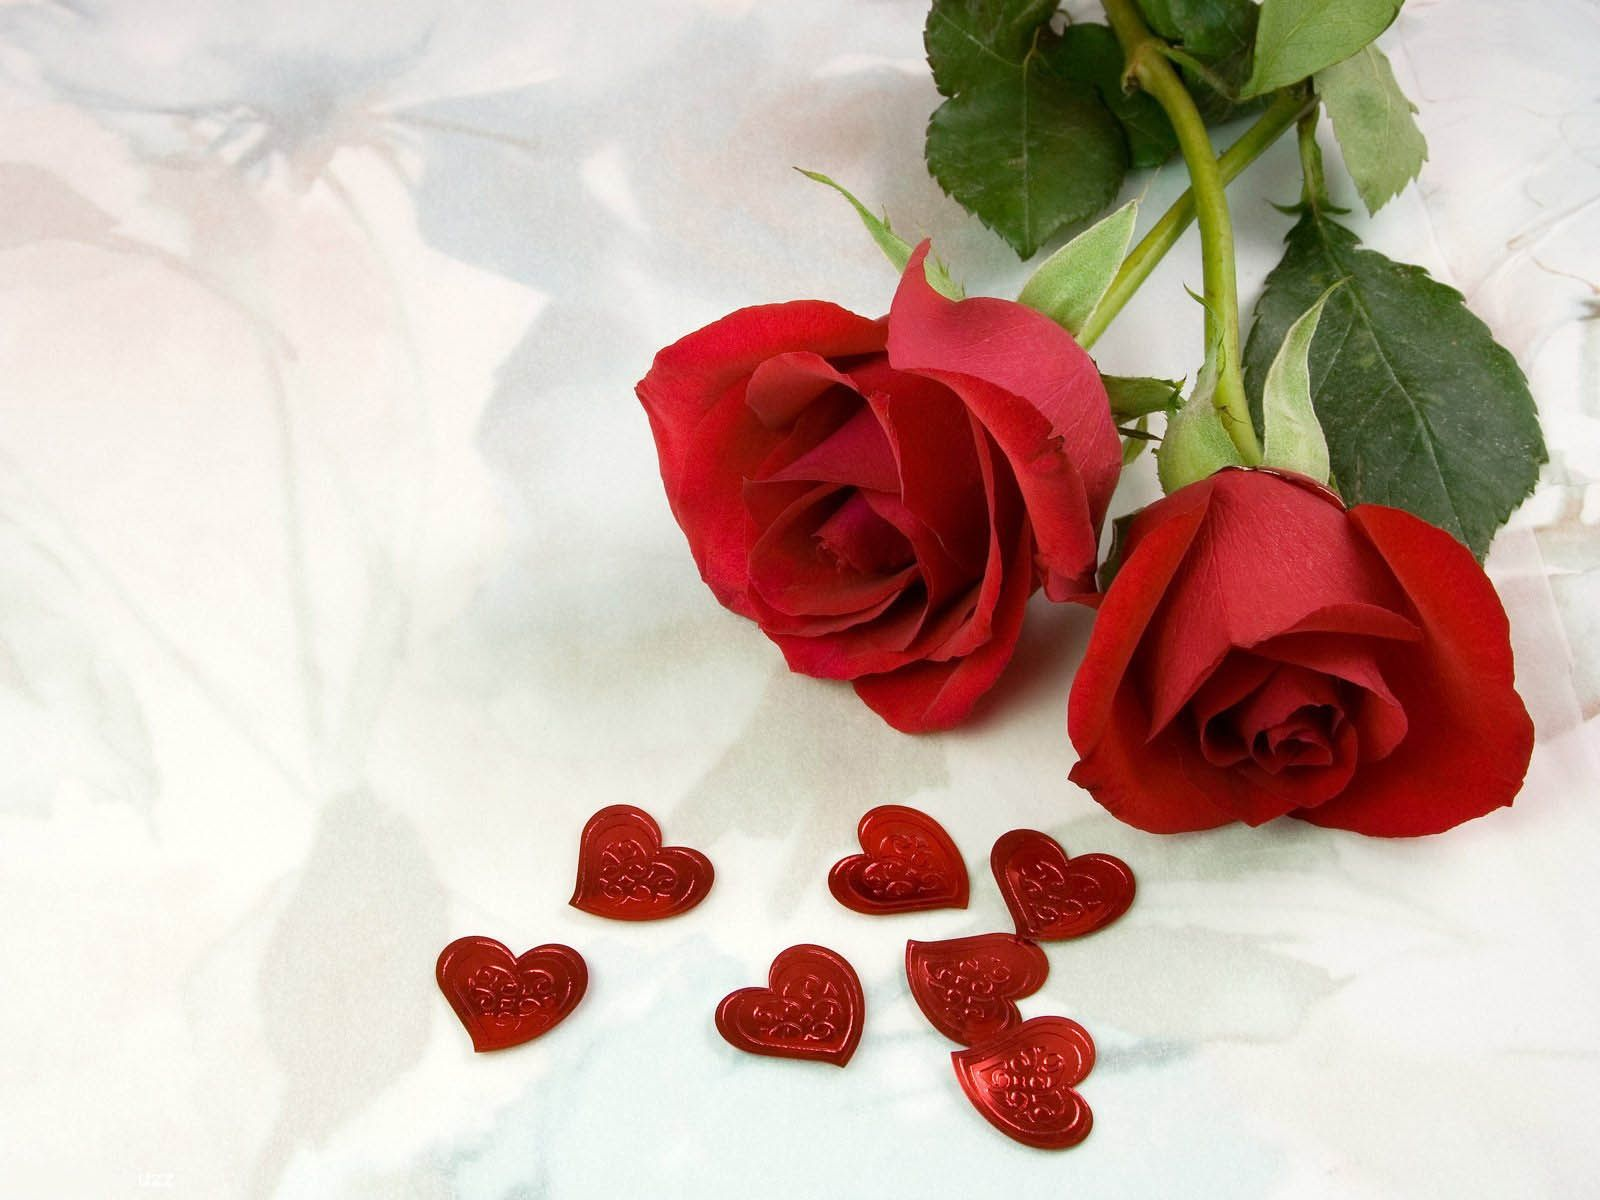 Images Of Love Rose Flowers Download Wallpapers Flower Rose Love Wallpaper Cave Pertaining To Image Beautiful Red Roses Rose Day Wallpaper Flower Wallpaper